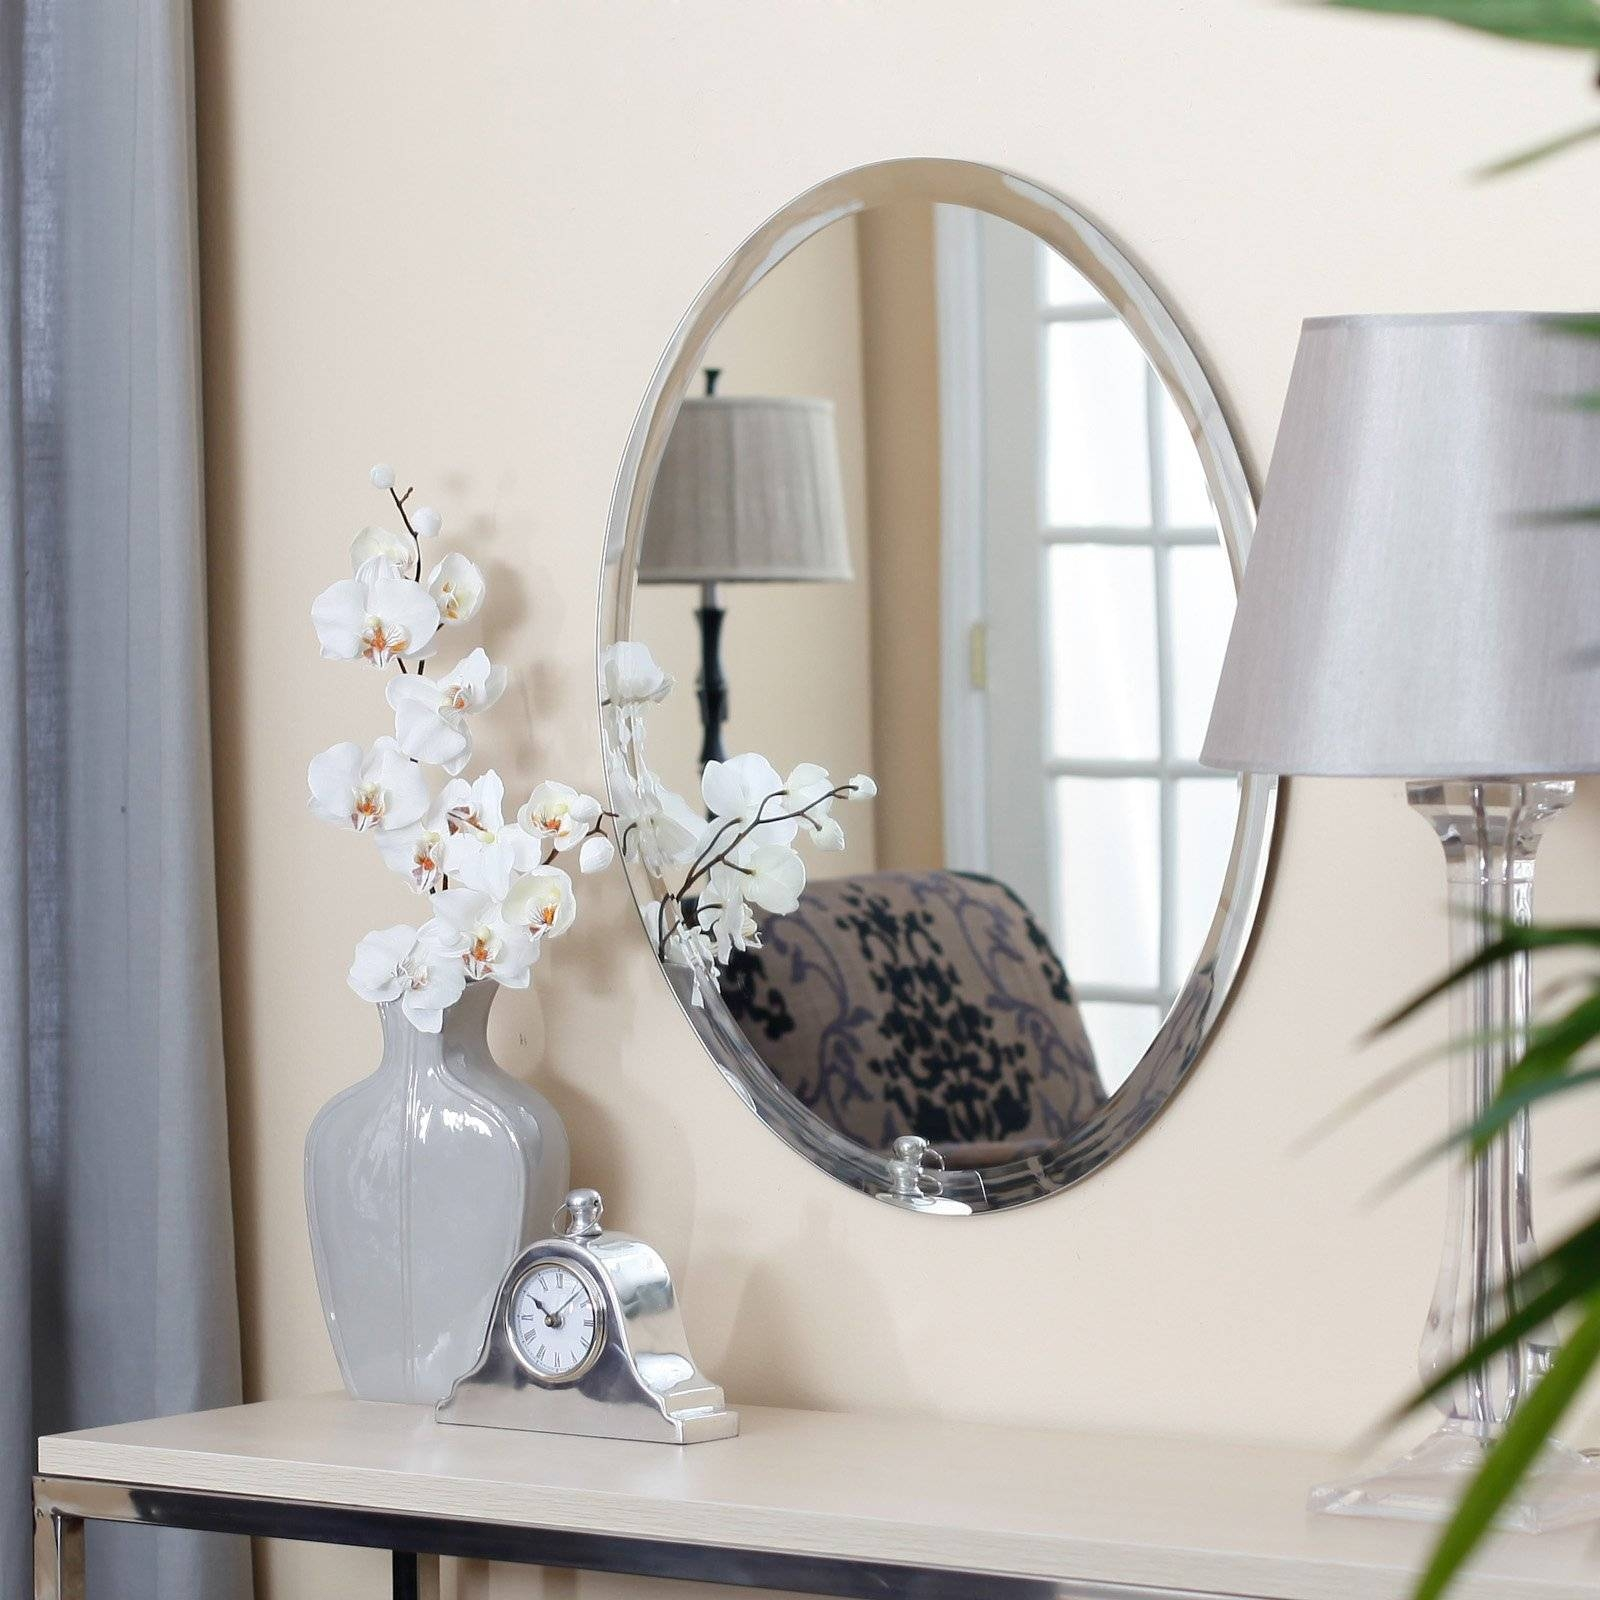 Uttermost Frameless Oval Beveled Vanity Mirror | Hayneedle with Oval Bevelled Mirrors (Image 15 of 15)